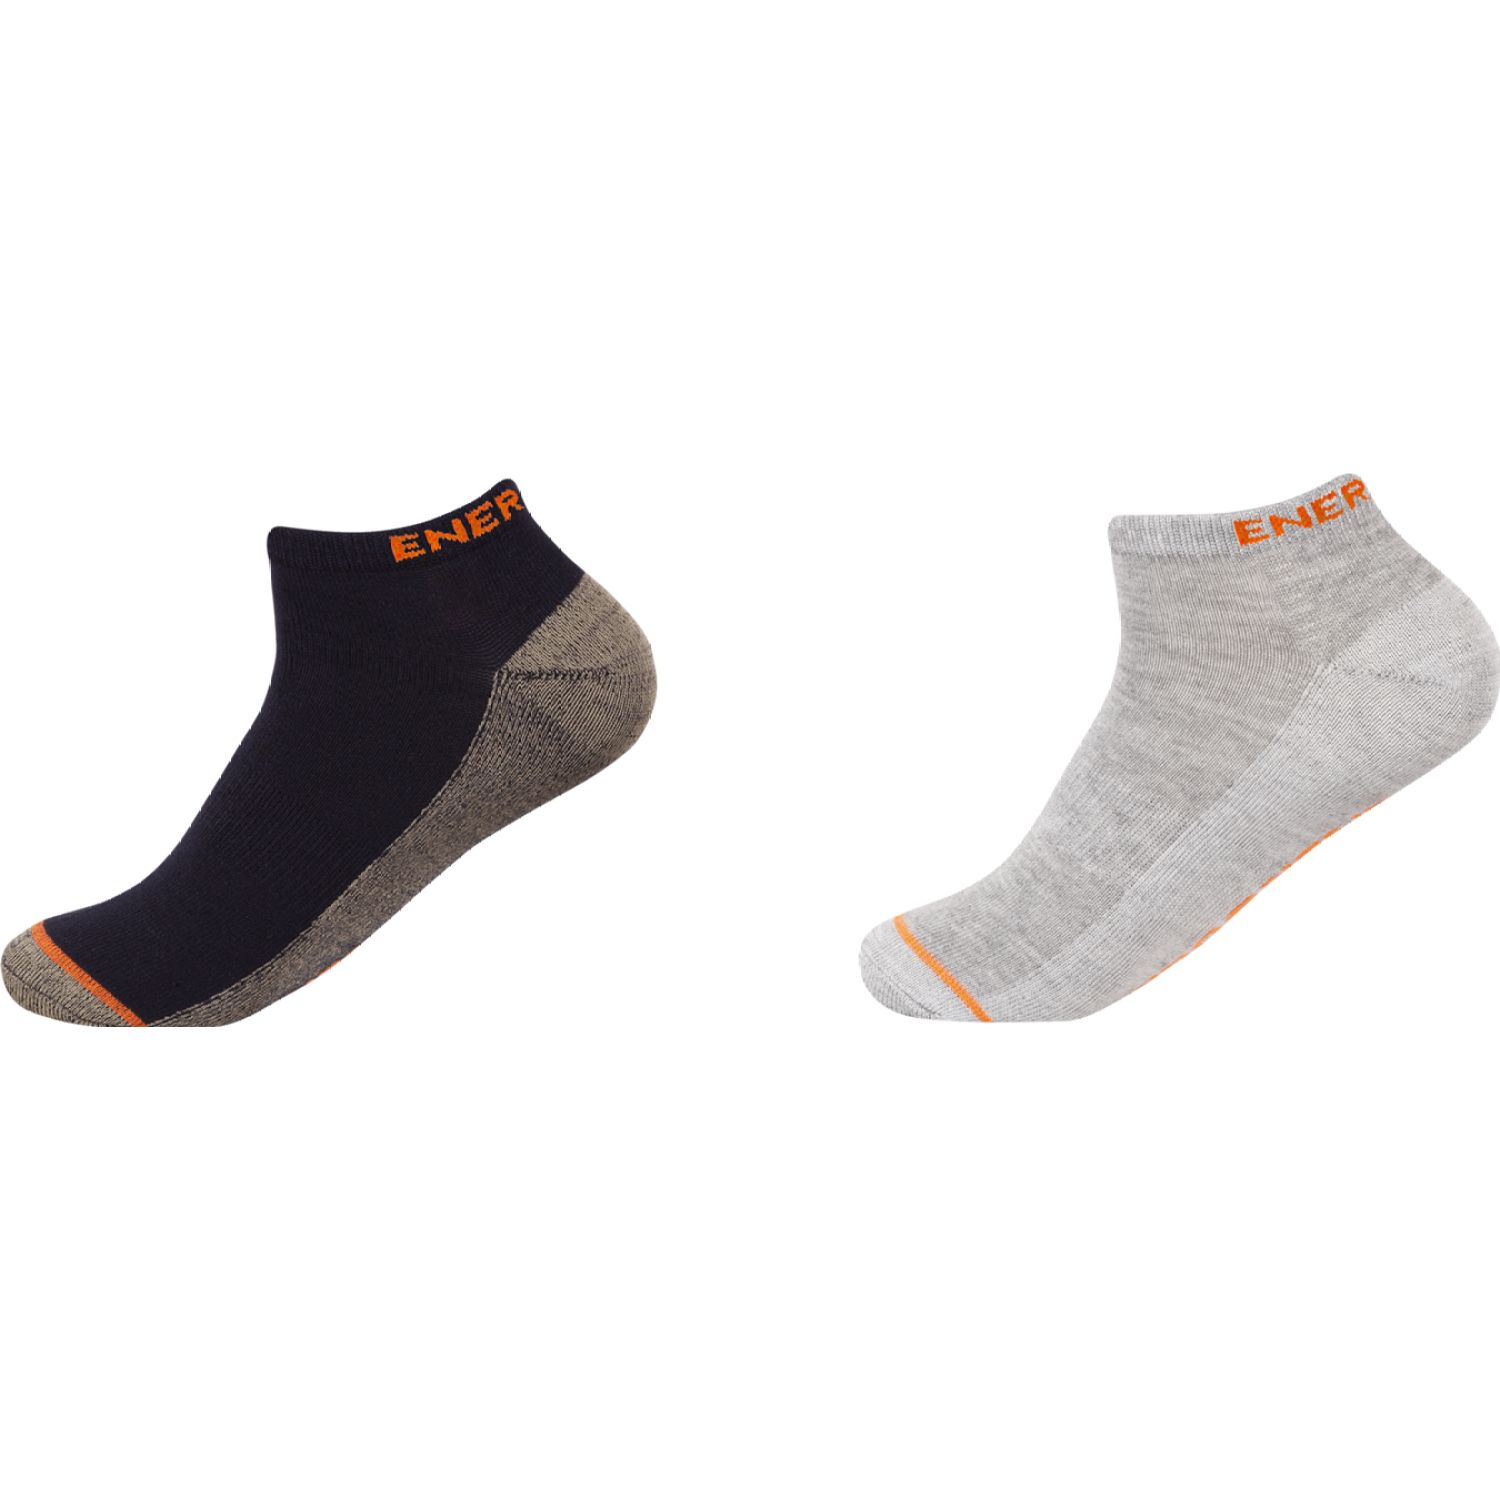 ENERSOCKS PACK 2 CALCETINES PED BAMBOO-COBRE NEGRO / GRIS Calcetines